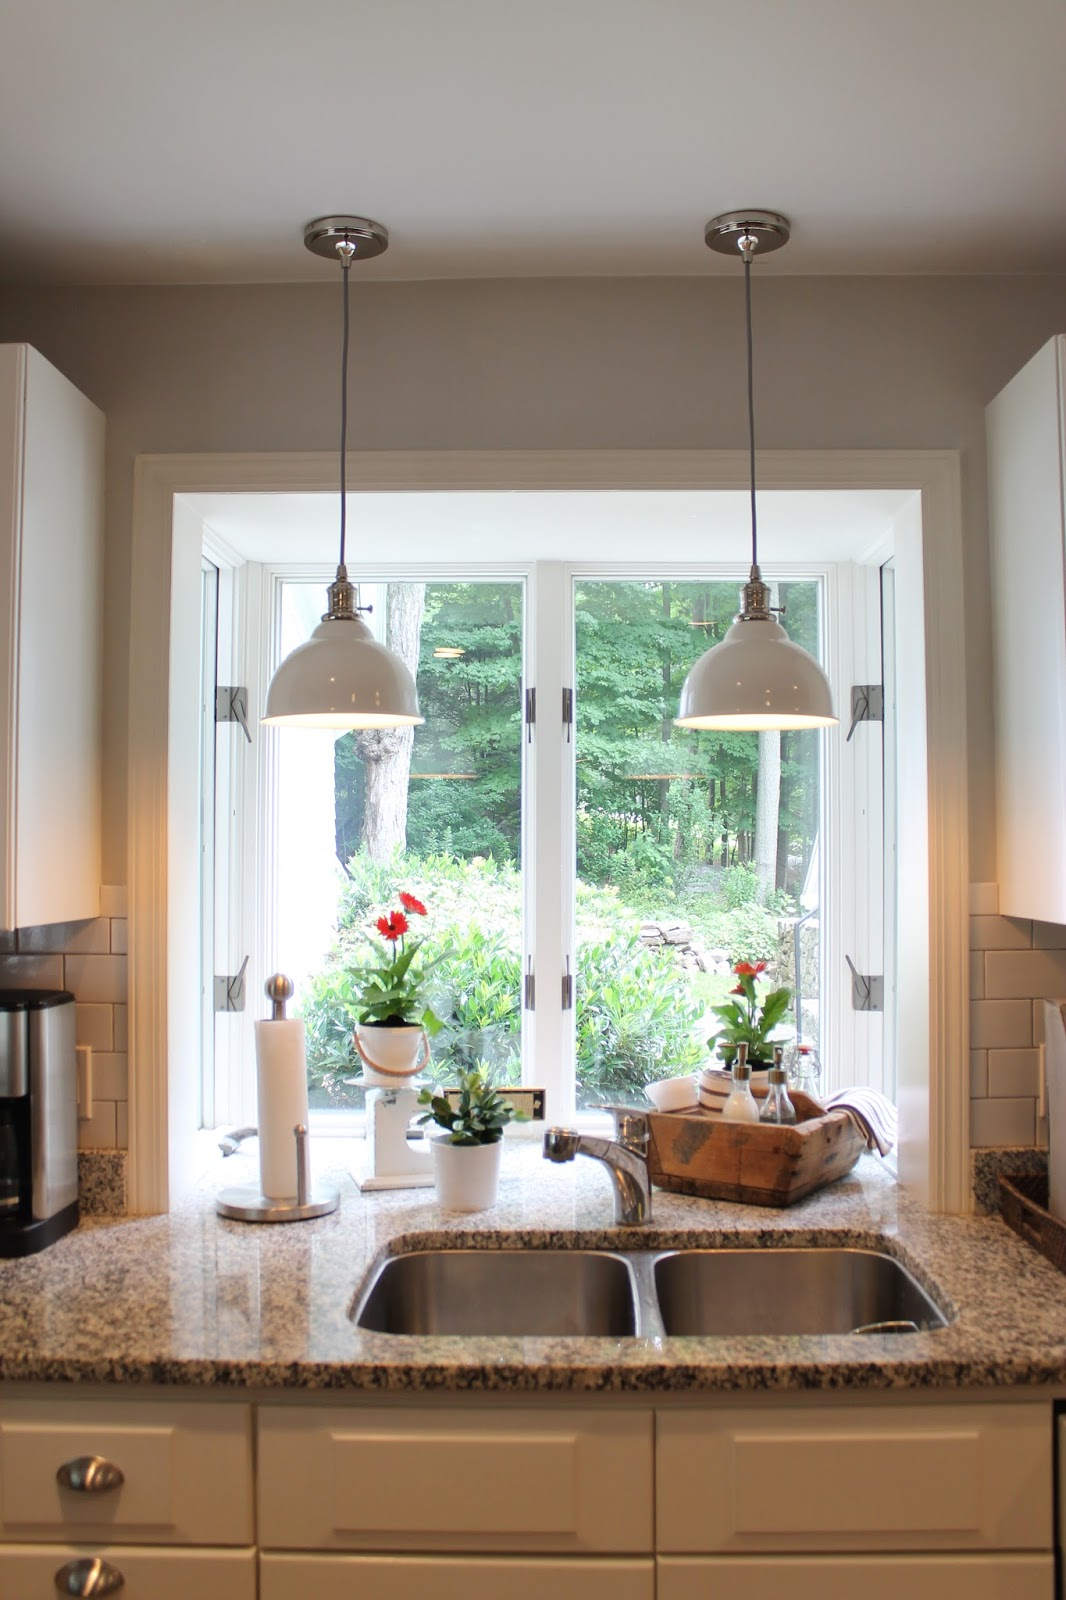 Kitchen Sink Pendant Light Bar Stools For Island The Picket Fence Projects Pretty Pb Pendants